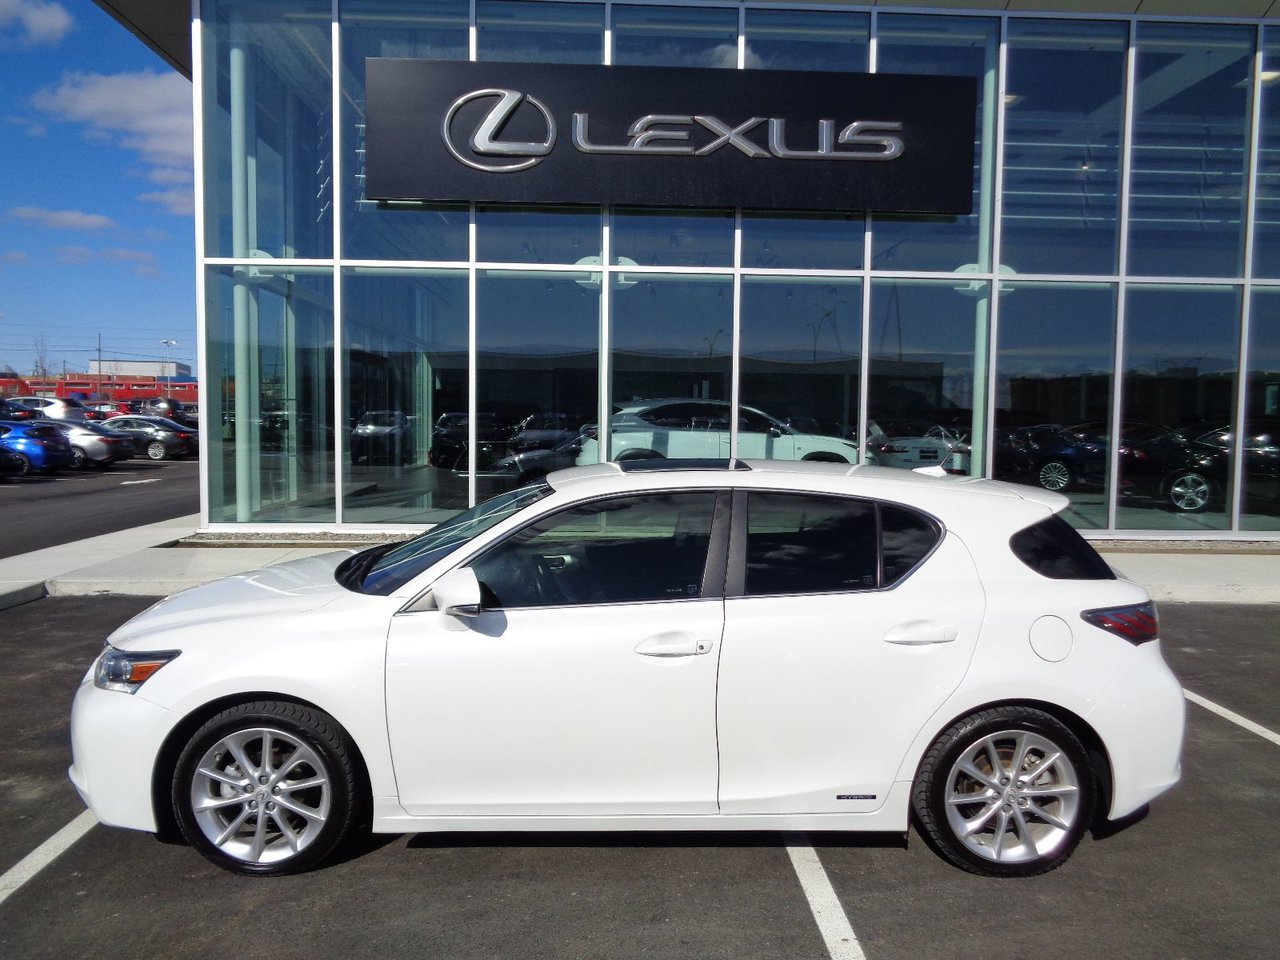 lexus ct 200h 2013 d 39 occasion vendre chez spinelli lexus lachine. Black Bedroom Furniture Sets. Home Design Ideas